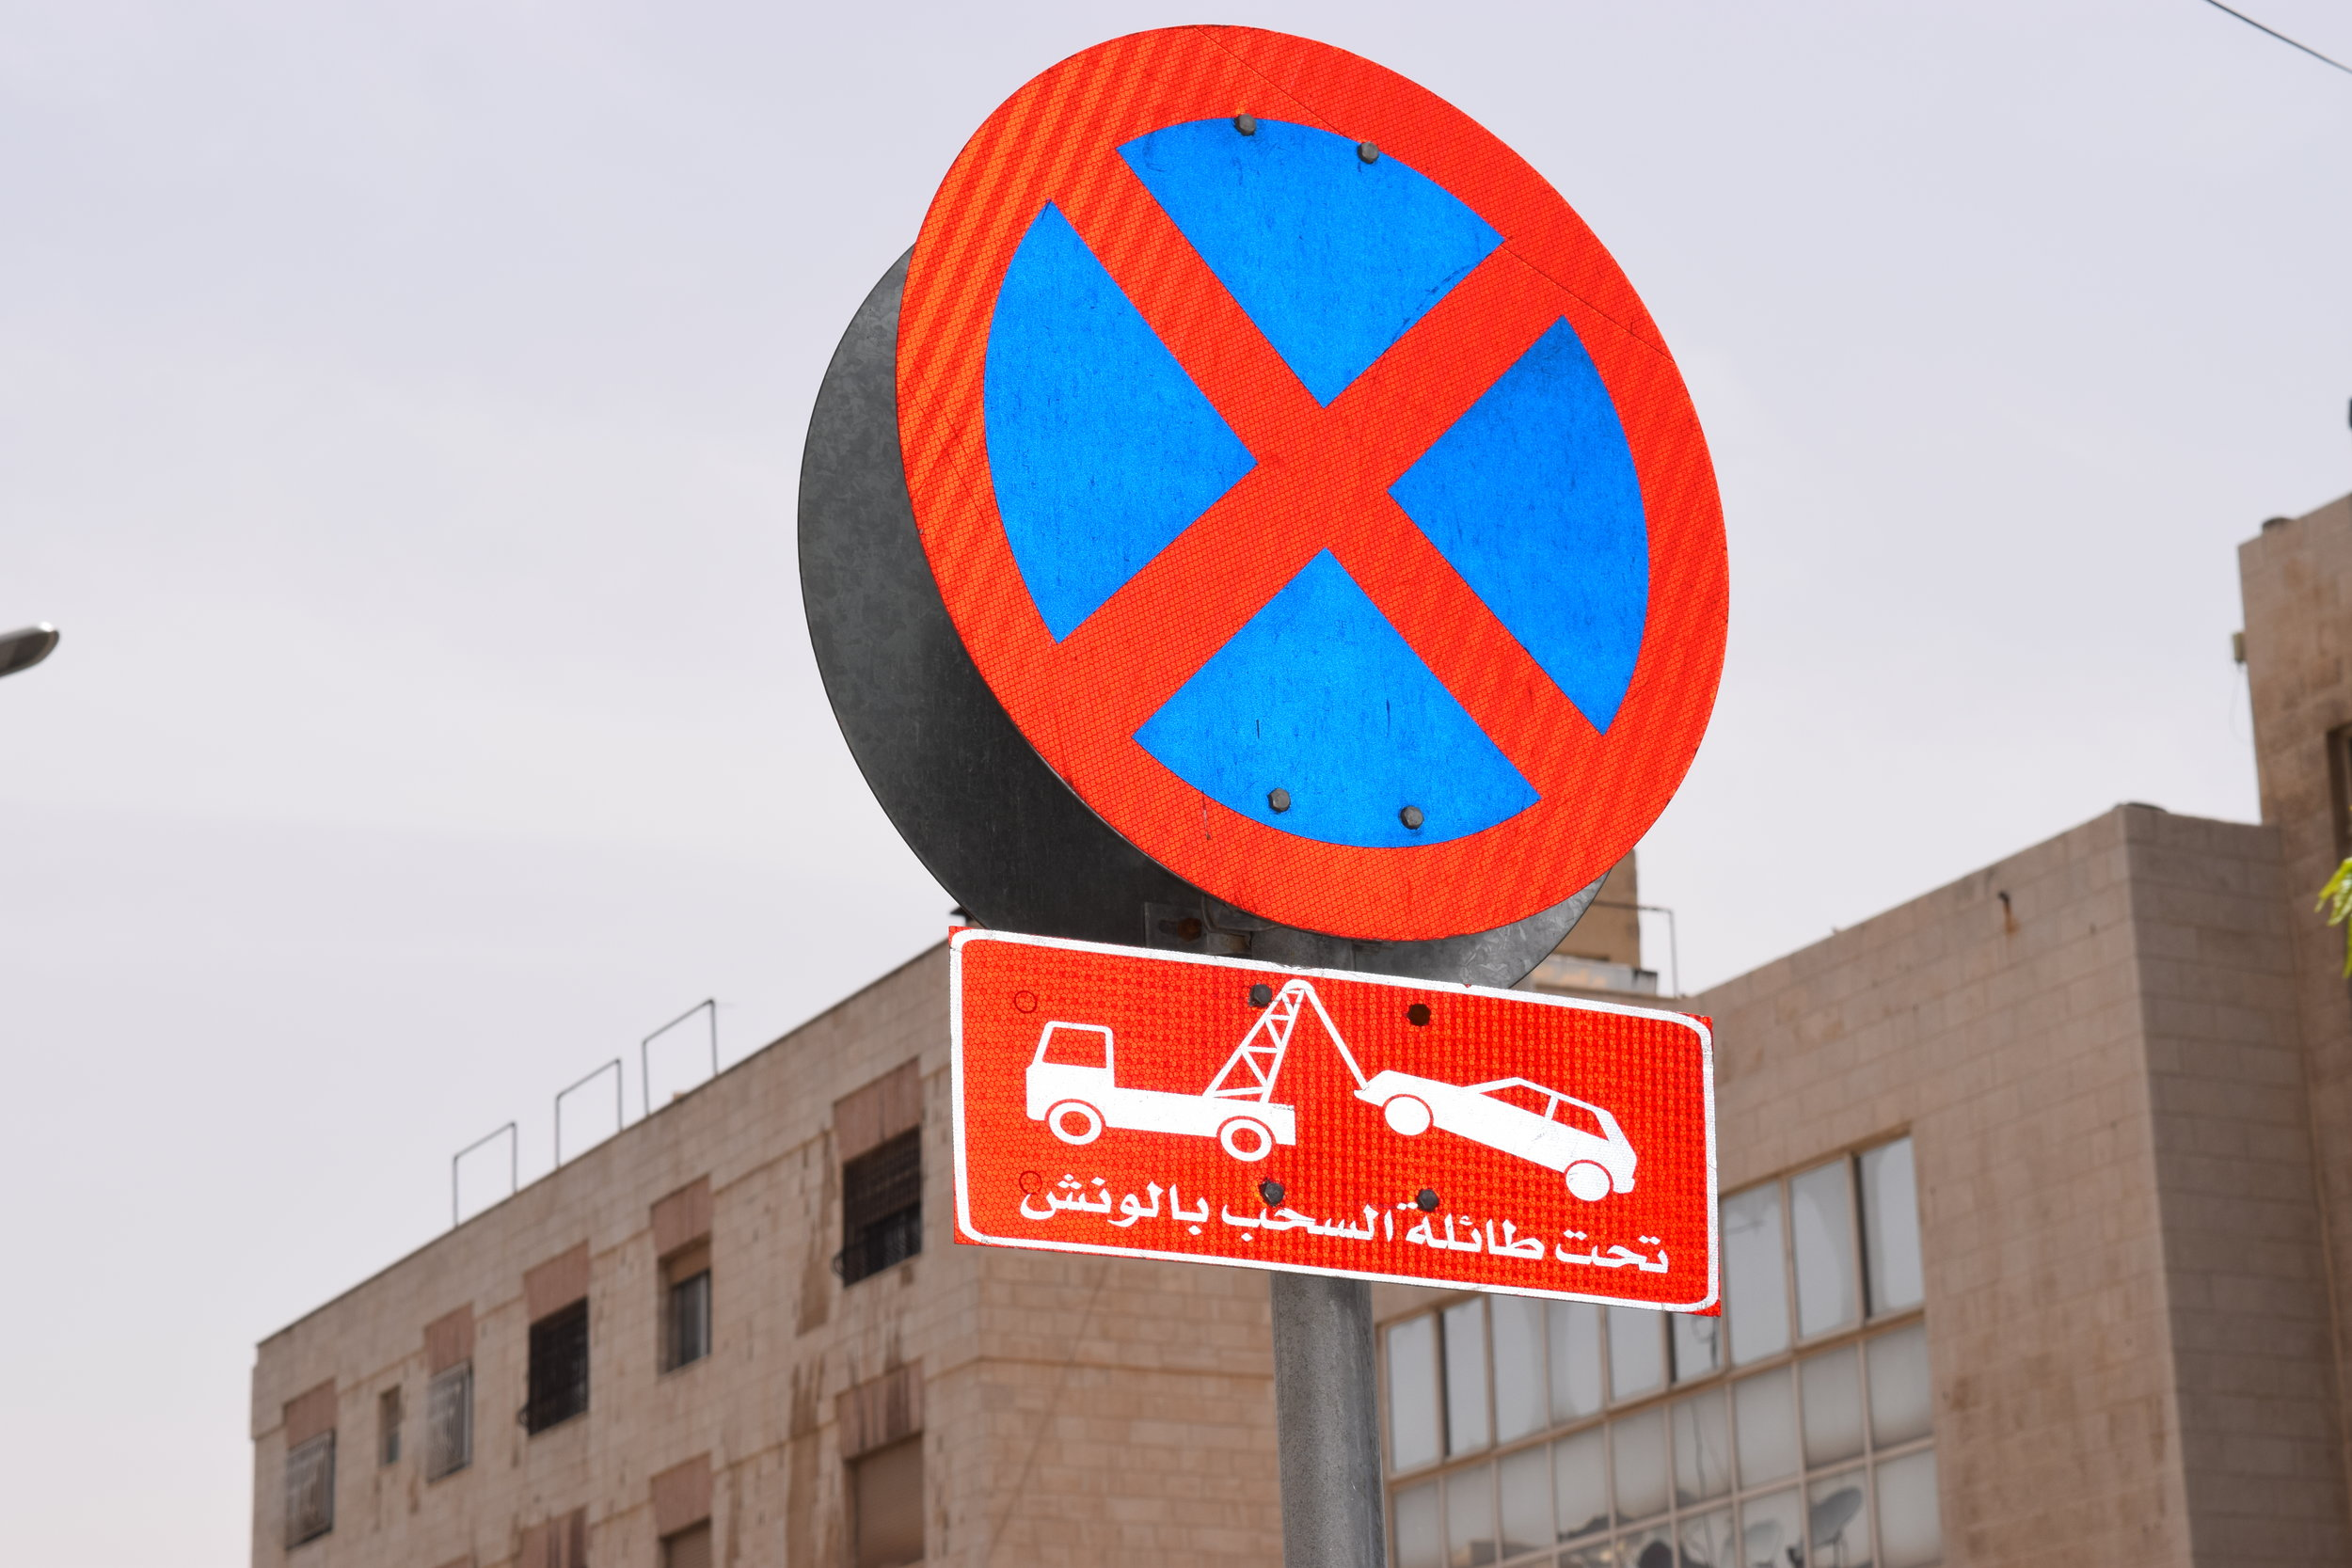 1. A warning sign indicating that cars parked in the no-parking zone will be towed.